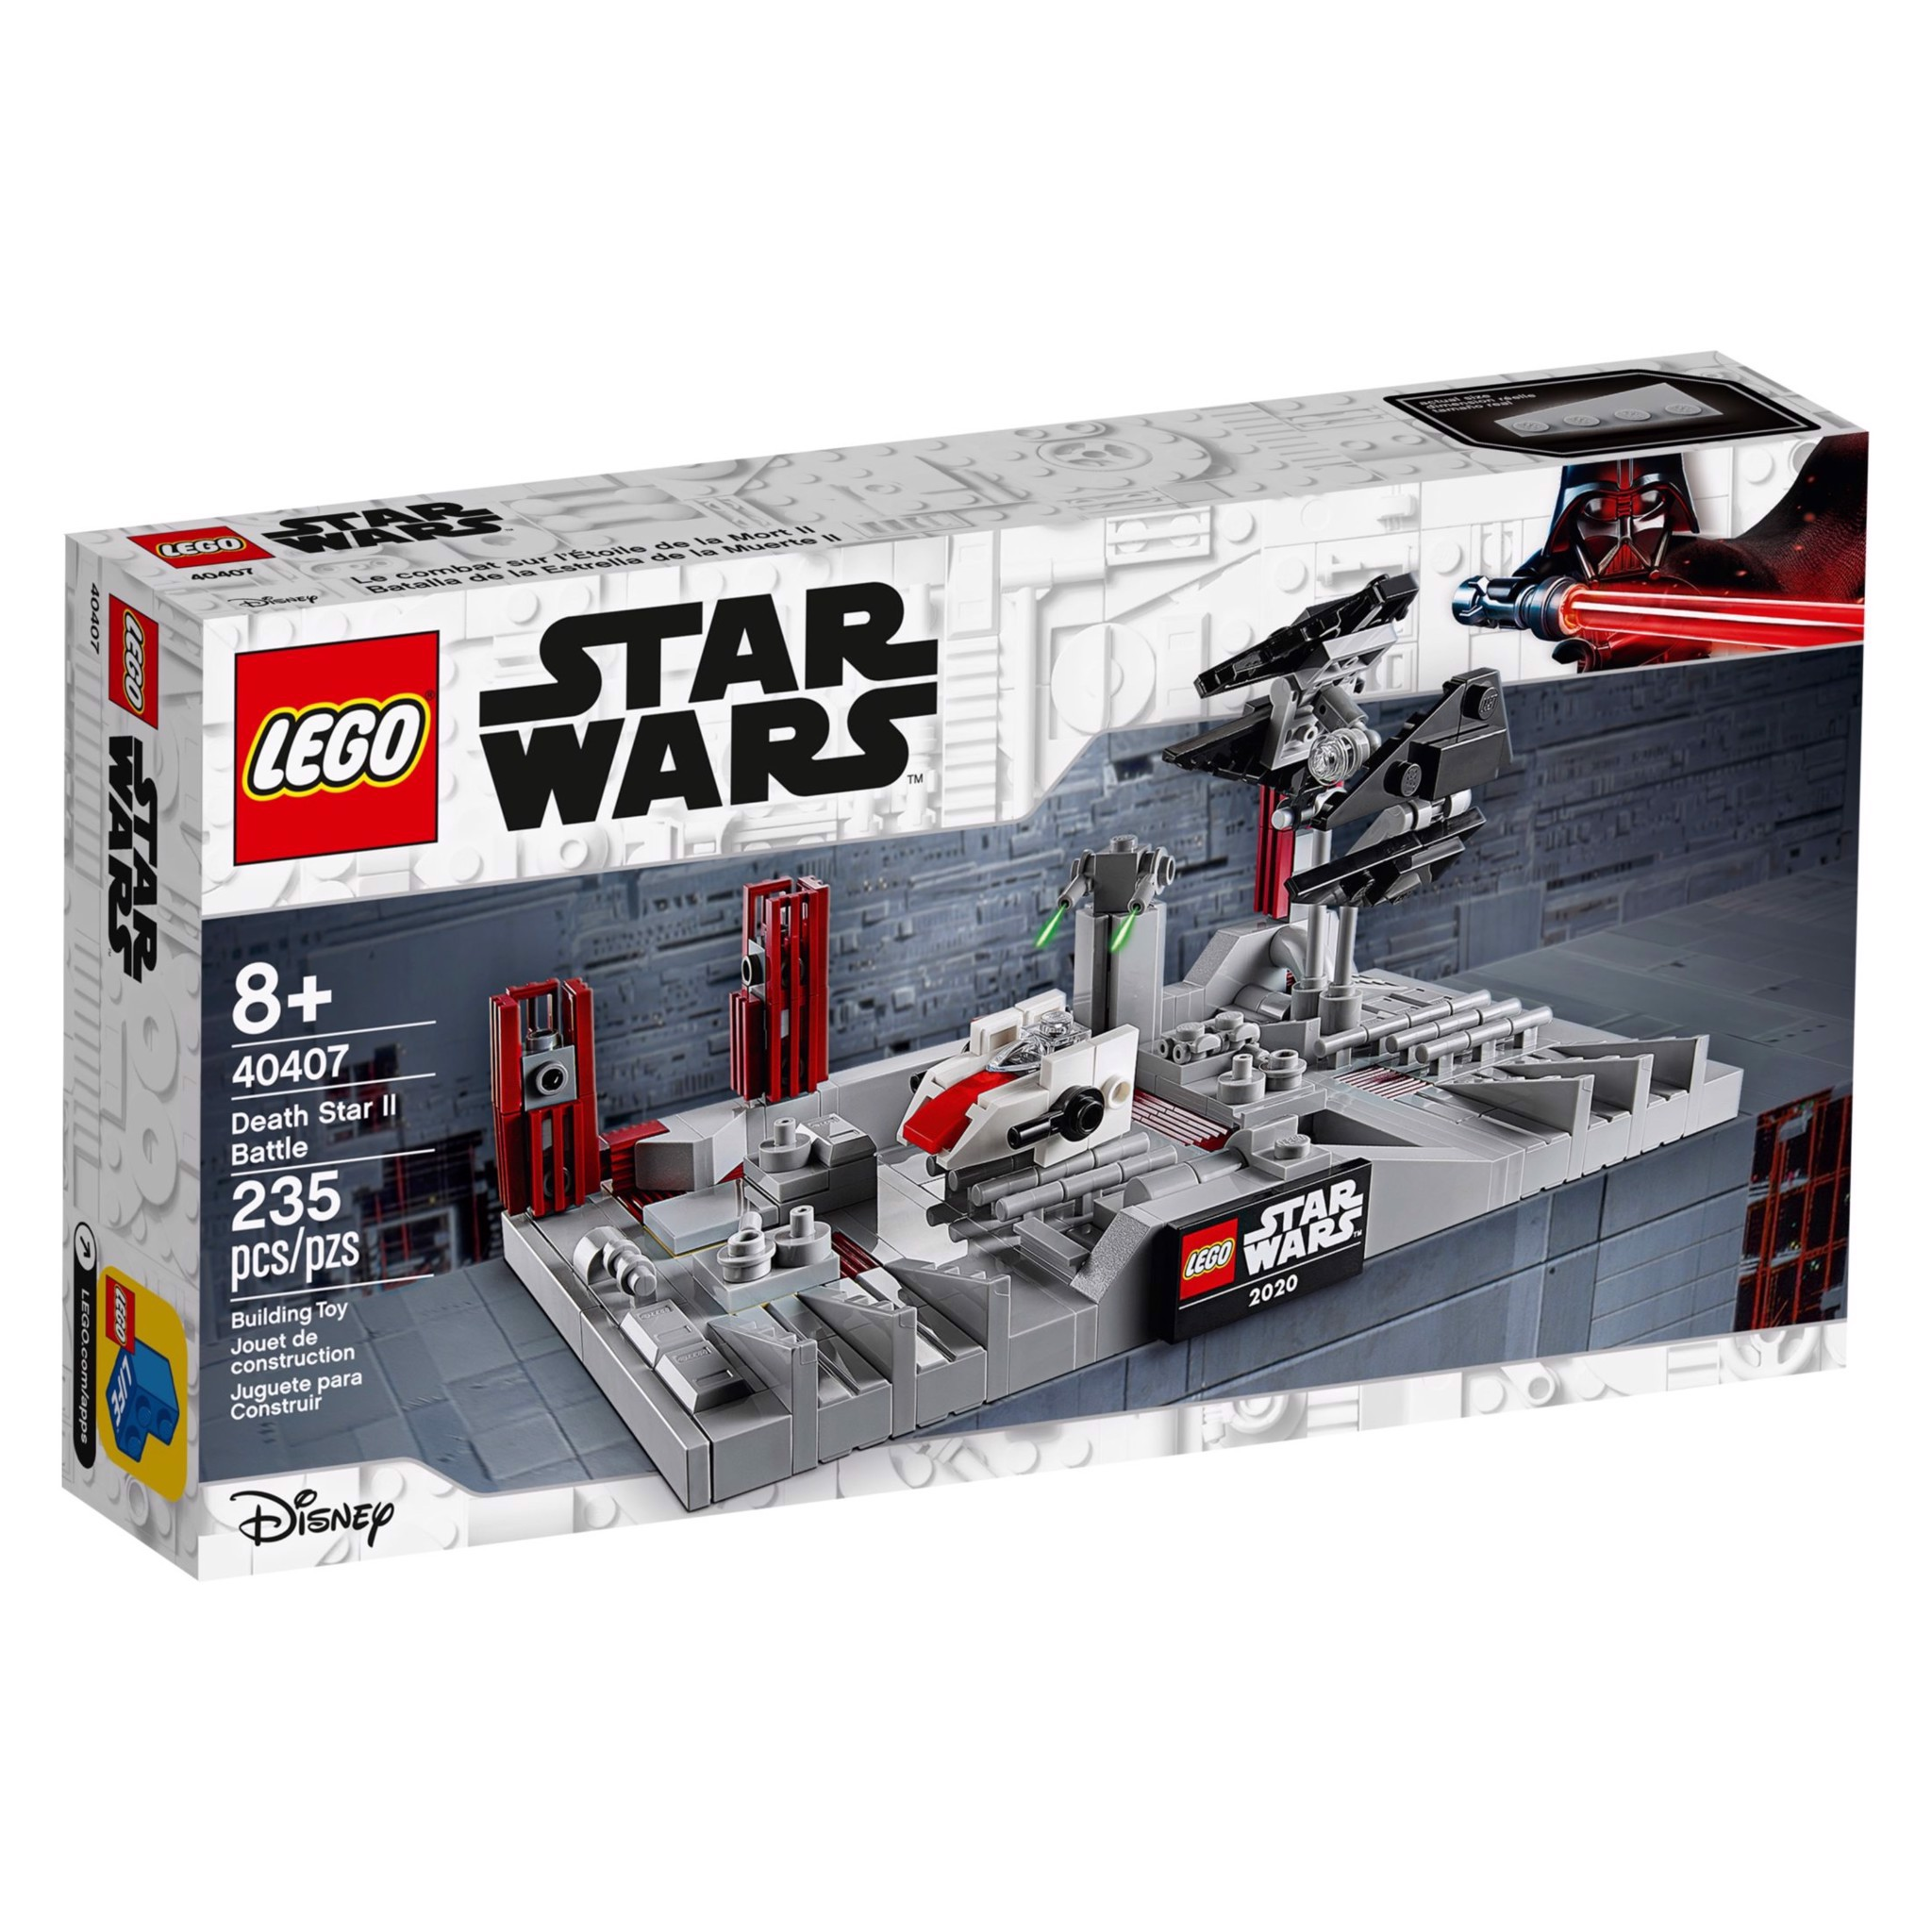 [CÓ HÀNG] LEGO Star Wars 40407 Death Star II Battle